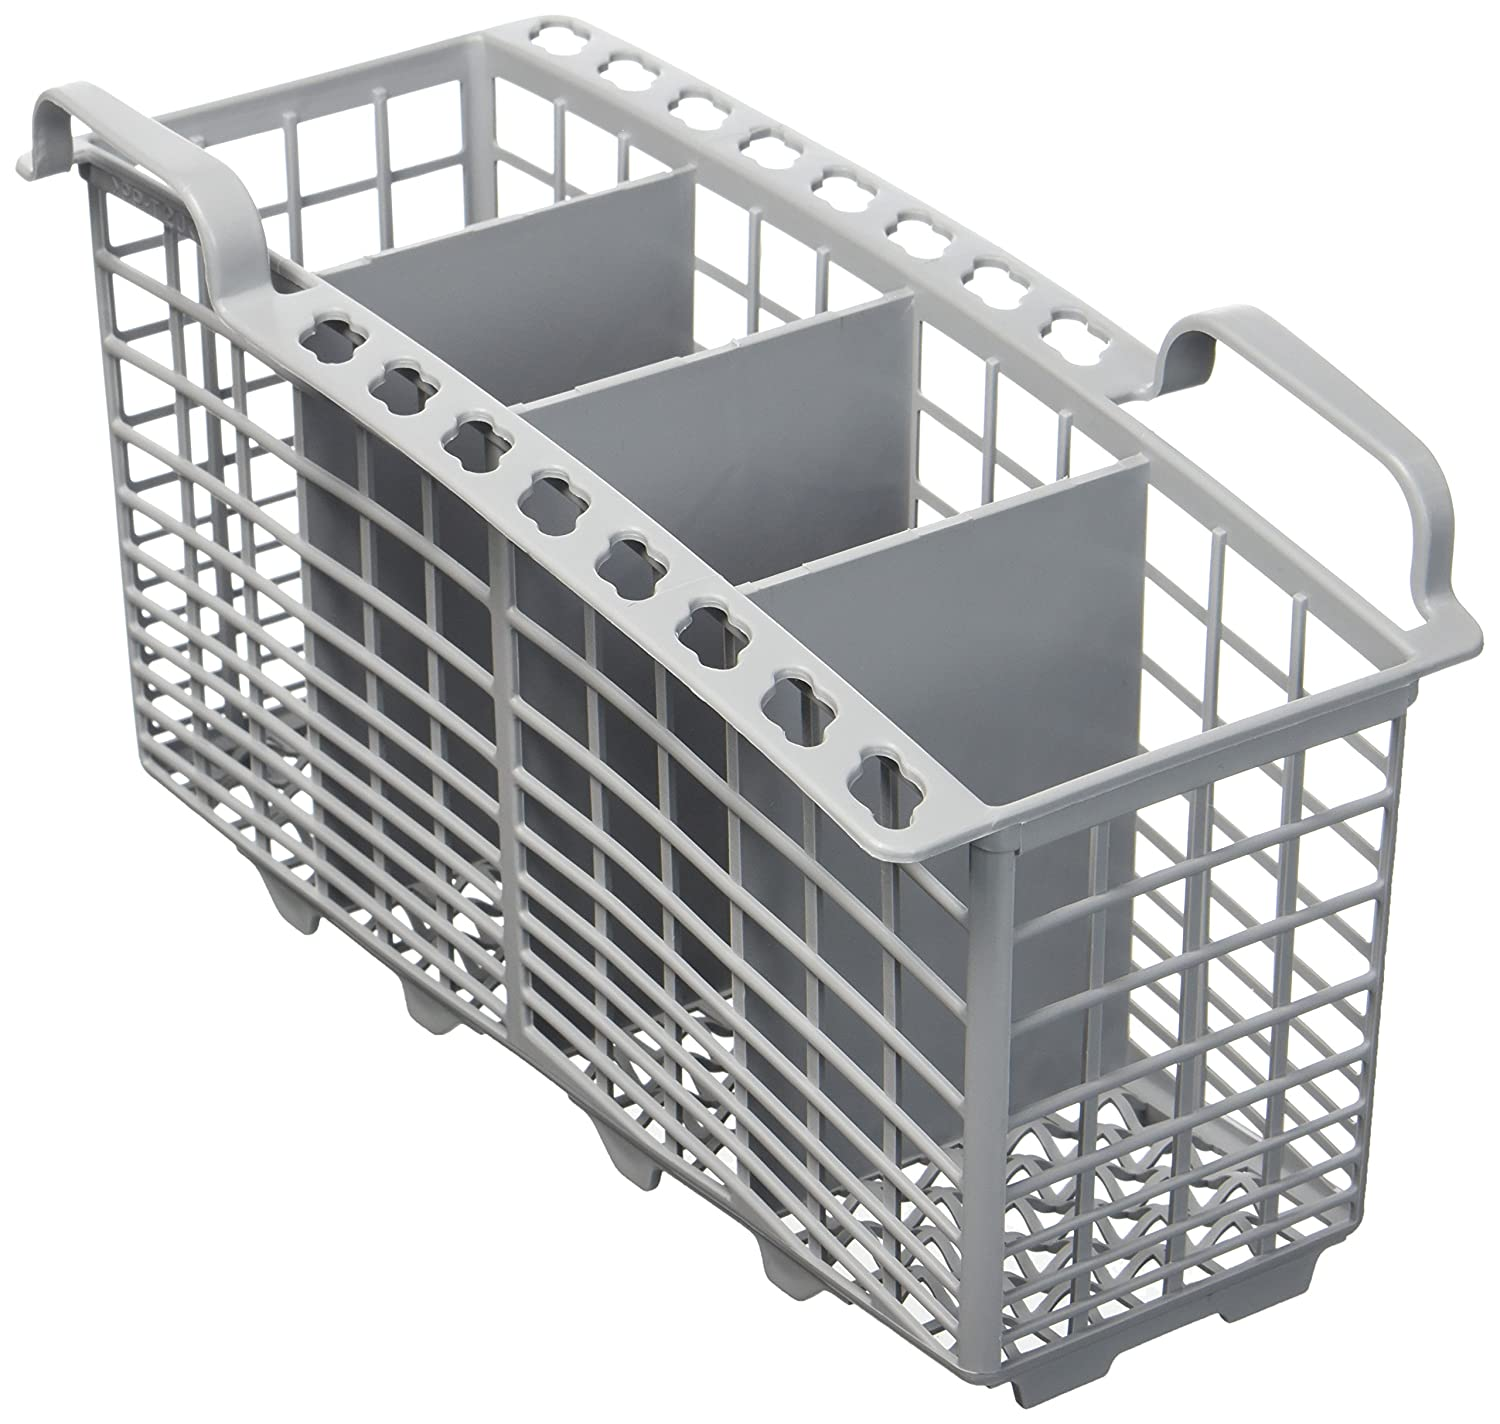 4-Compartment Cutlery Basket Fits Indesit Dishwasher, Grey Europart 68-UN-01